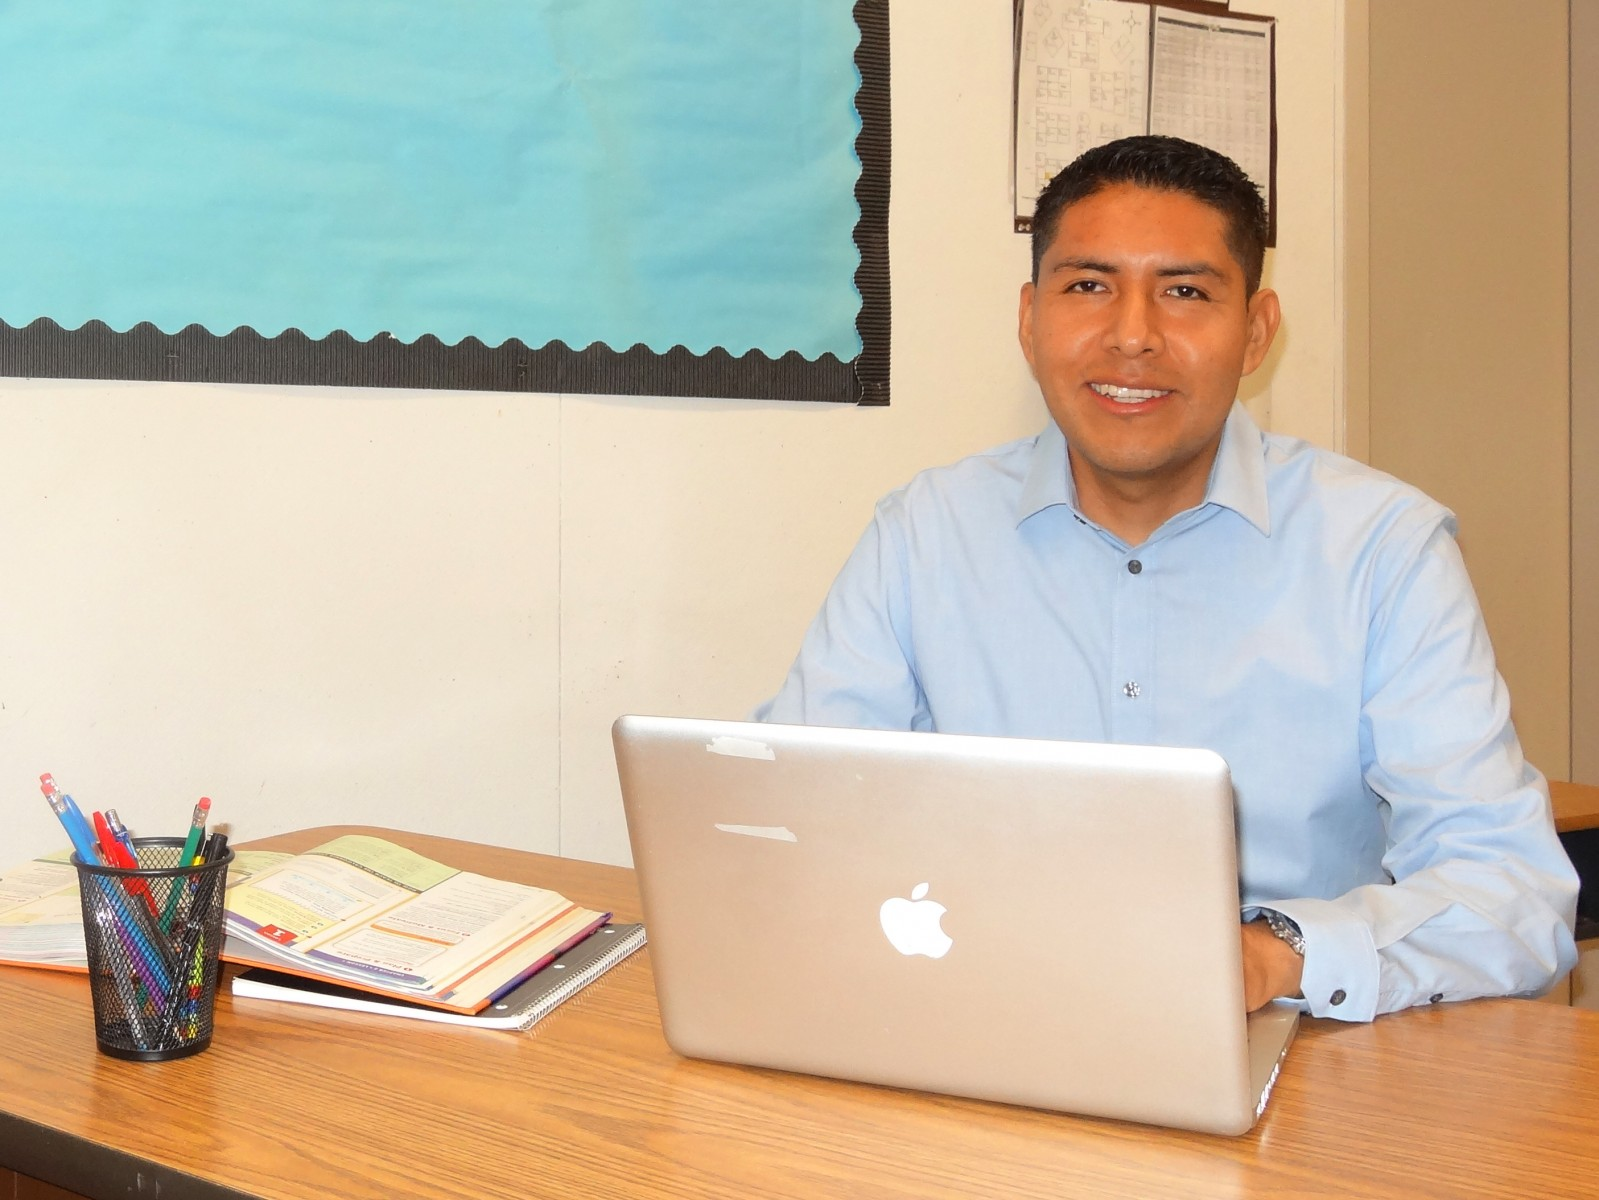 Jose Melo, who earned a bachelor's degree, teaching credential and master's from CSUSM, is a decorated teacher at Valley Center Middle School.